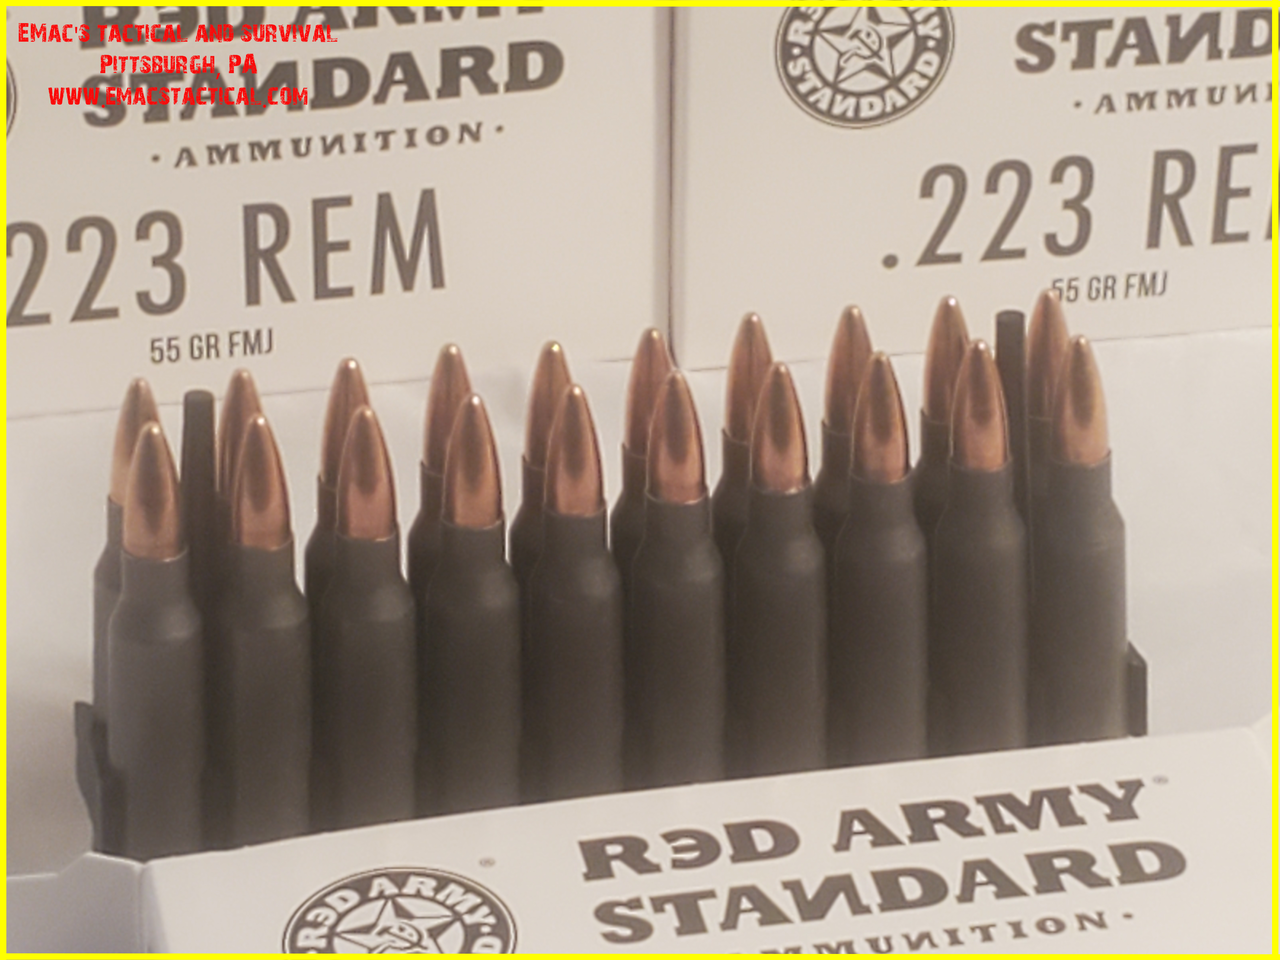 223 55 gr FMJ AR15 Red Army Standard Ammunition -  20 Rounds